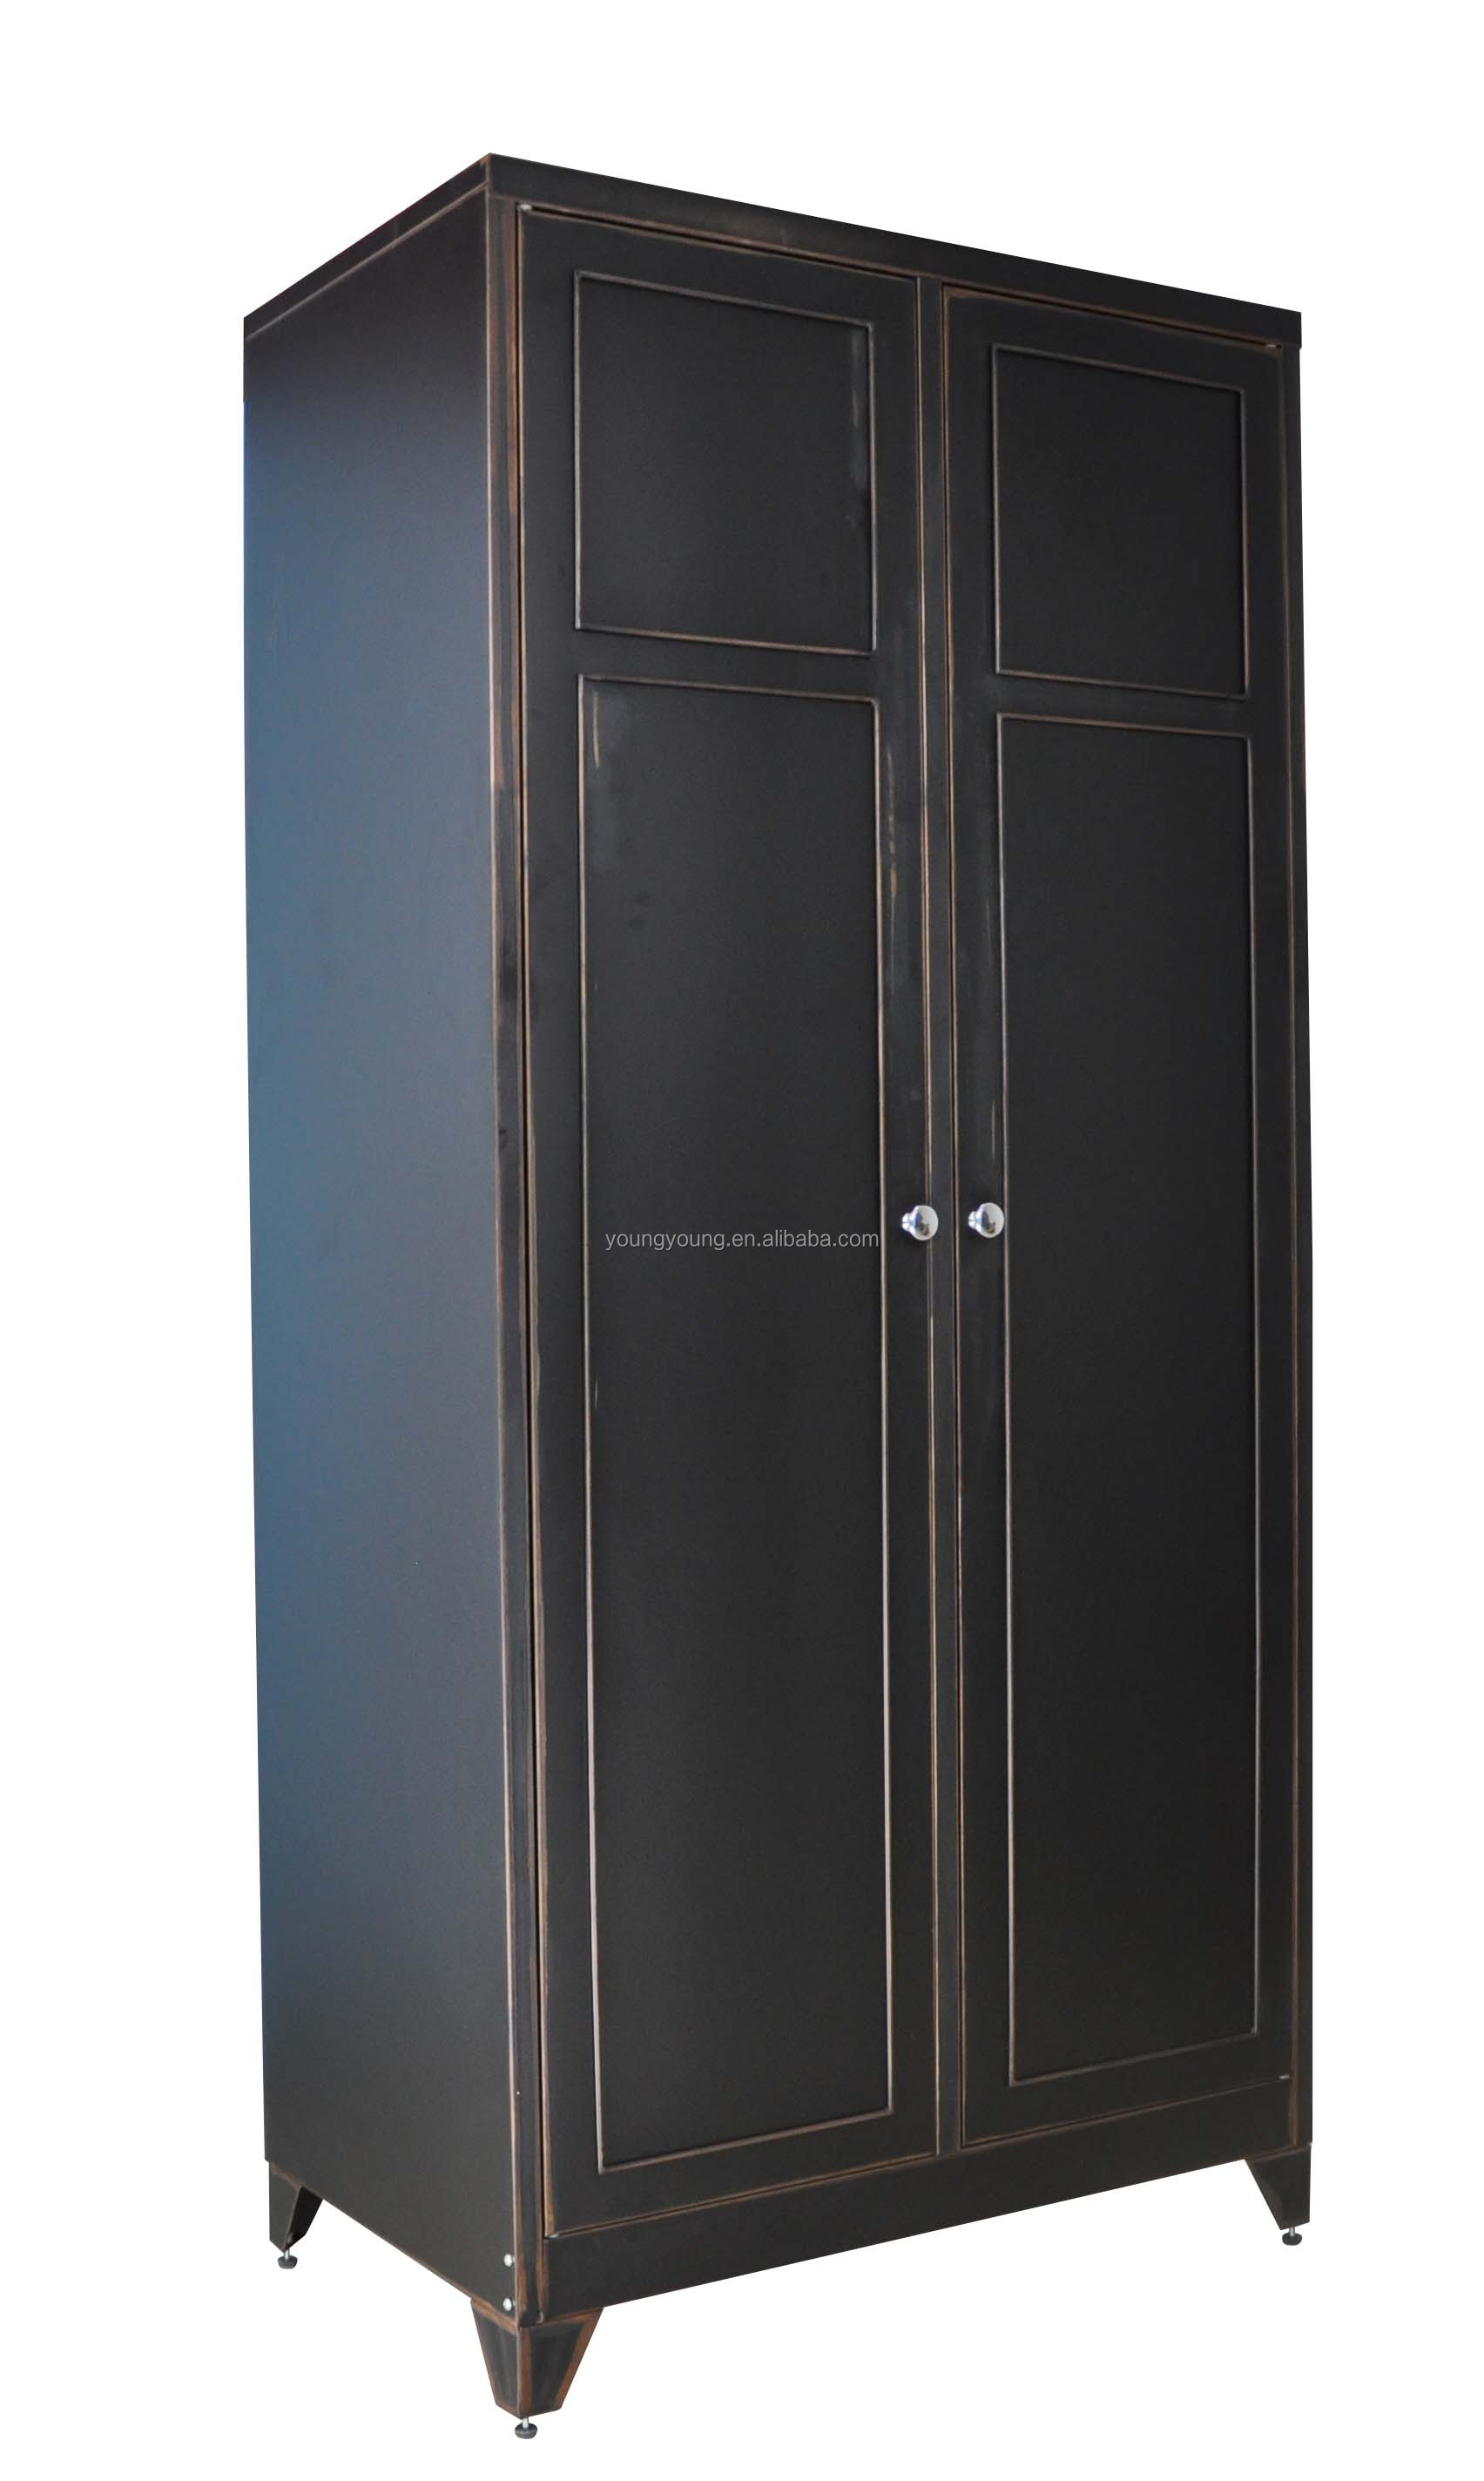 Steel Furniture Antique Bedroom Wardrobe Designs Wardrobe Cabinet Buy Antique Steel Wardrobe